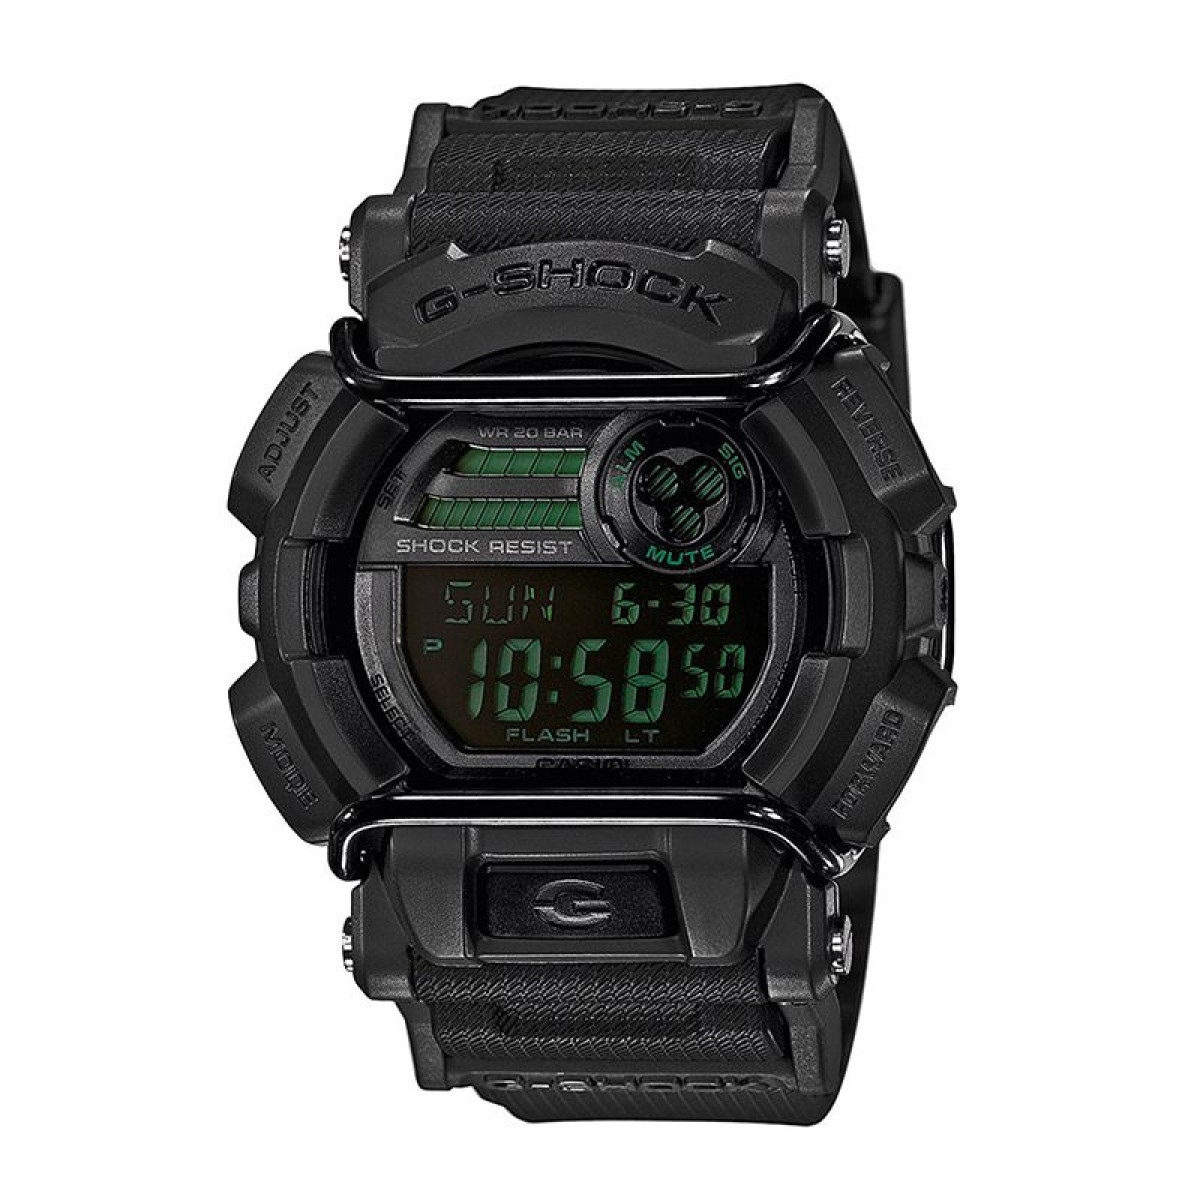 Часовник Casio G-Shock GD-400MB-1ER